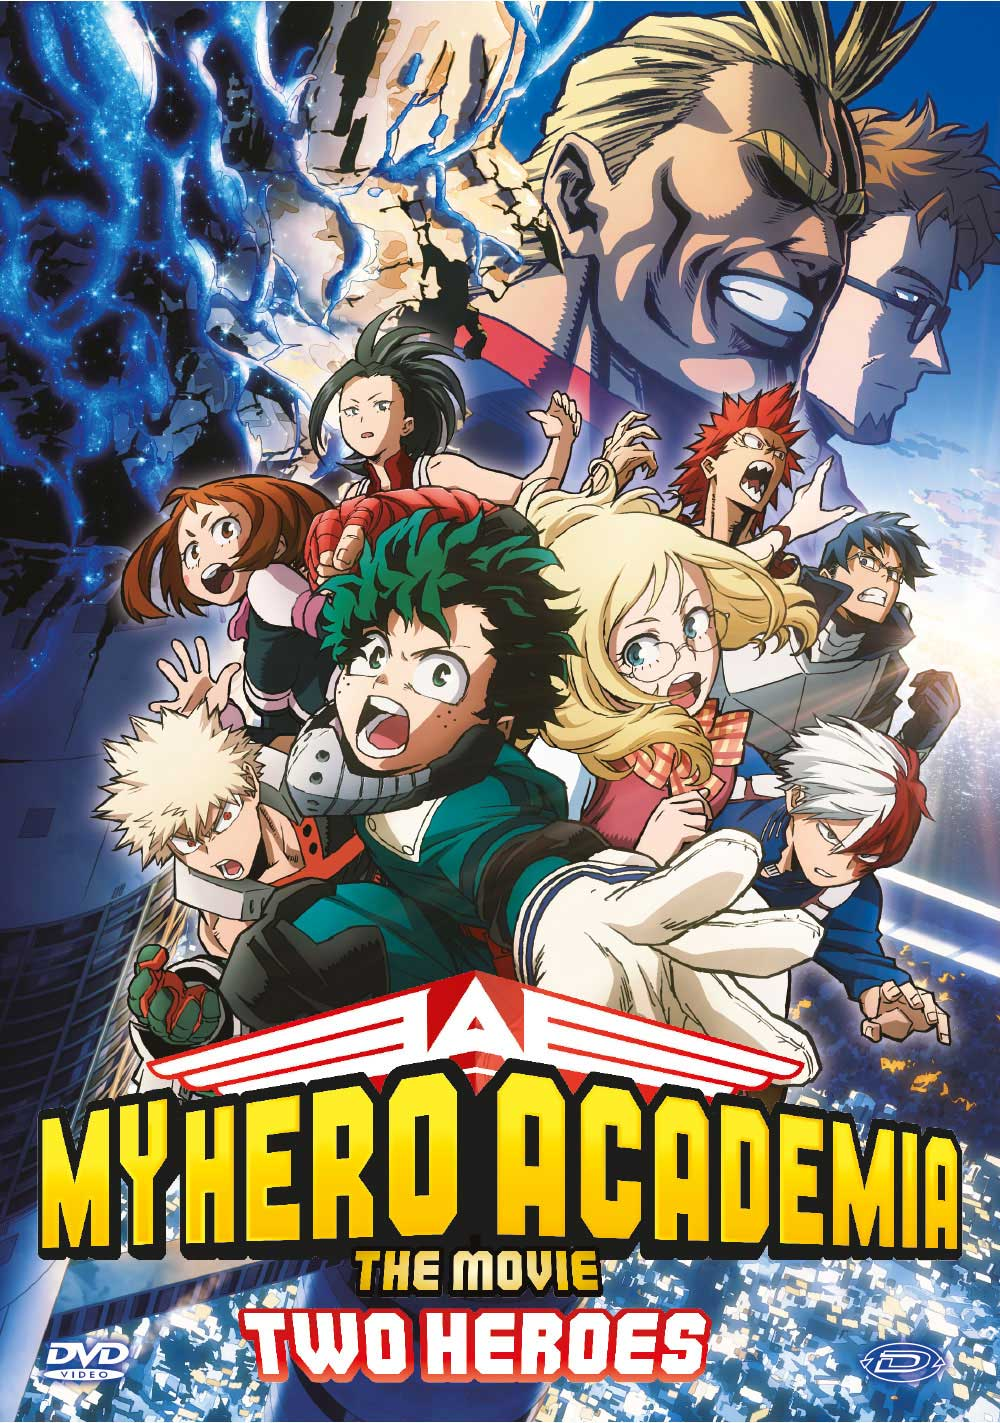 MY HERO ACADEMIA - THE MOVIE - TWO HEROES (DVD)